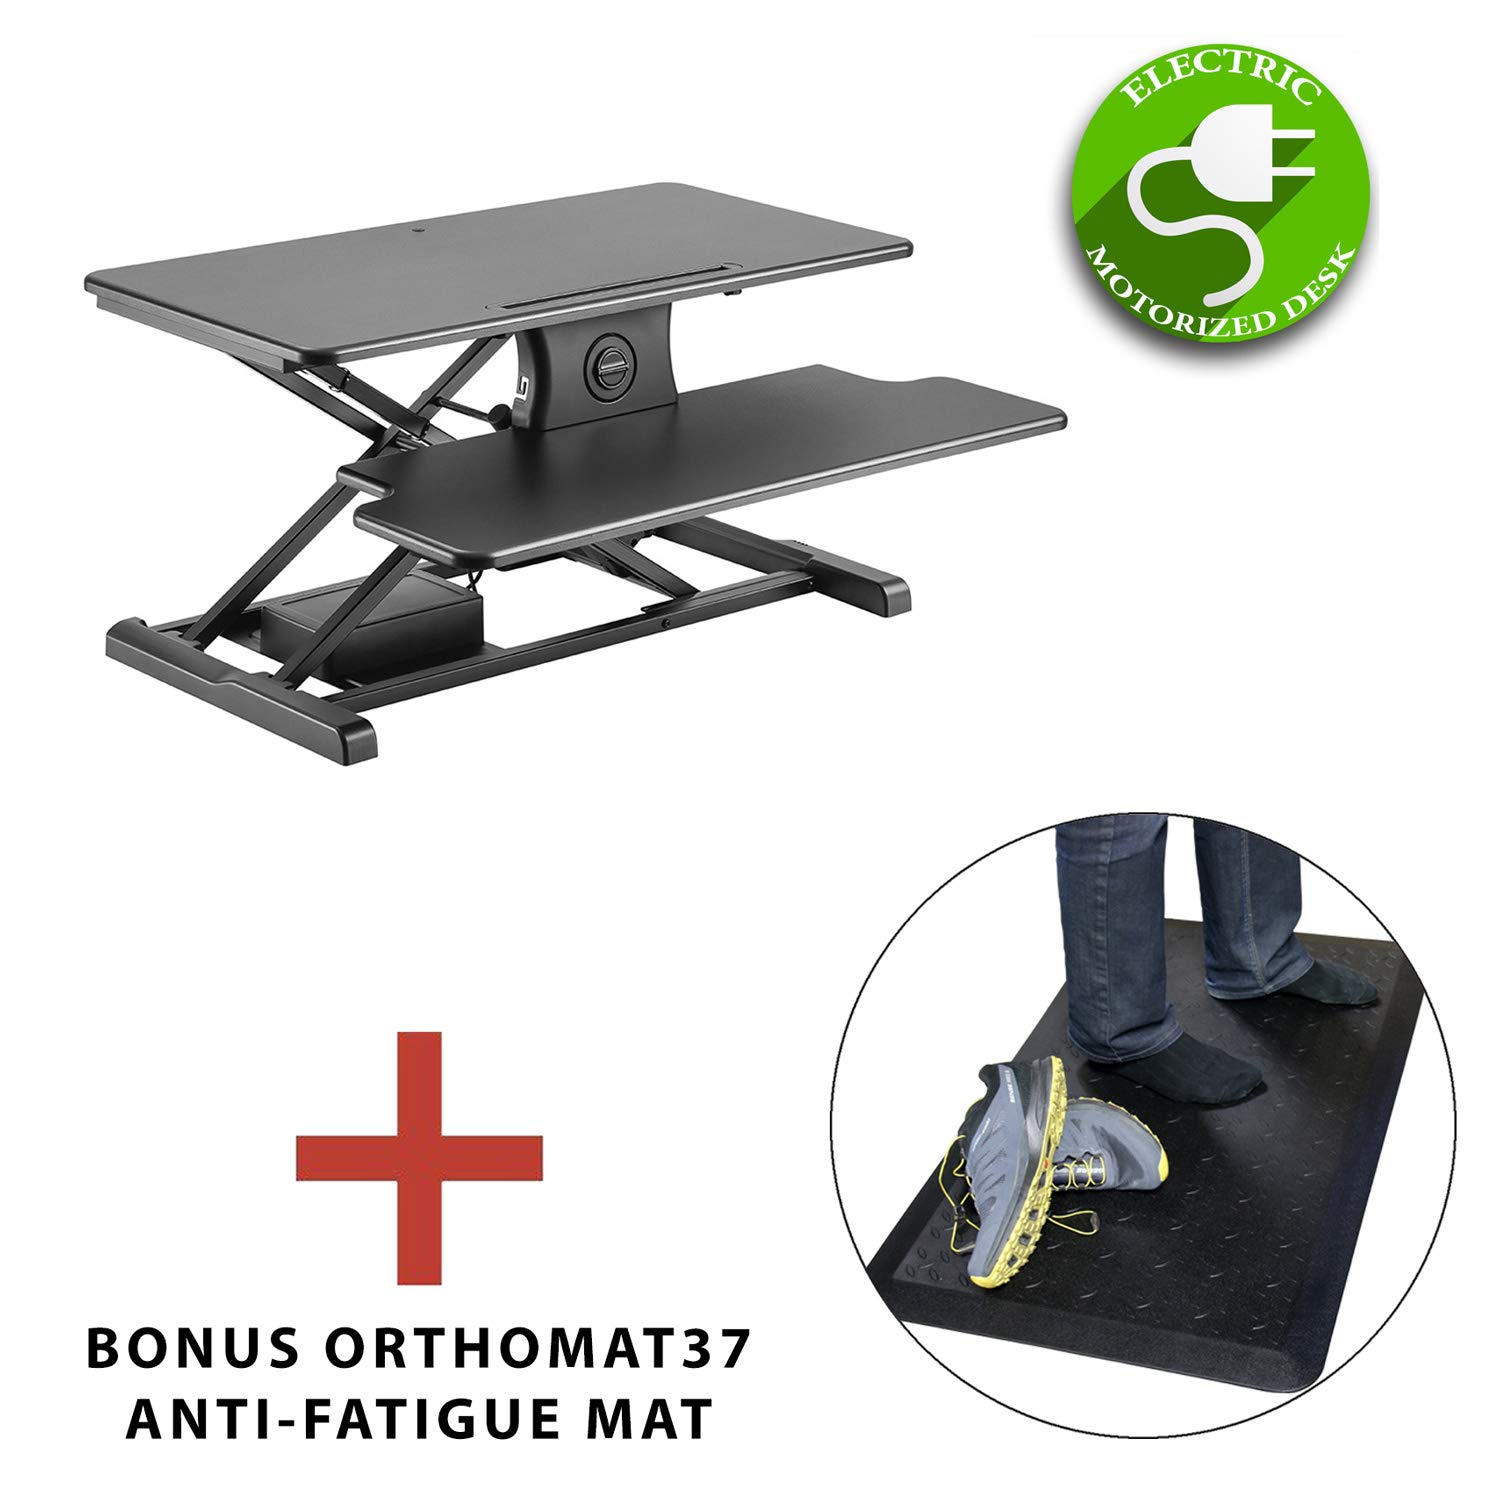 Boost Industries STS-DR Premium Sit to Stand Desk Riser/Monitor Stand with OrthoMat Anti-Fatigue Non-Slip Standing Mat (Black - Motorized/Electric, 35 Standard Depth (STS-DR35M)) STS-DR35M Orthomat Bundle